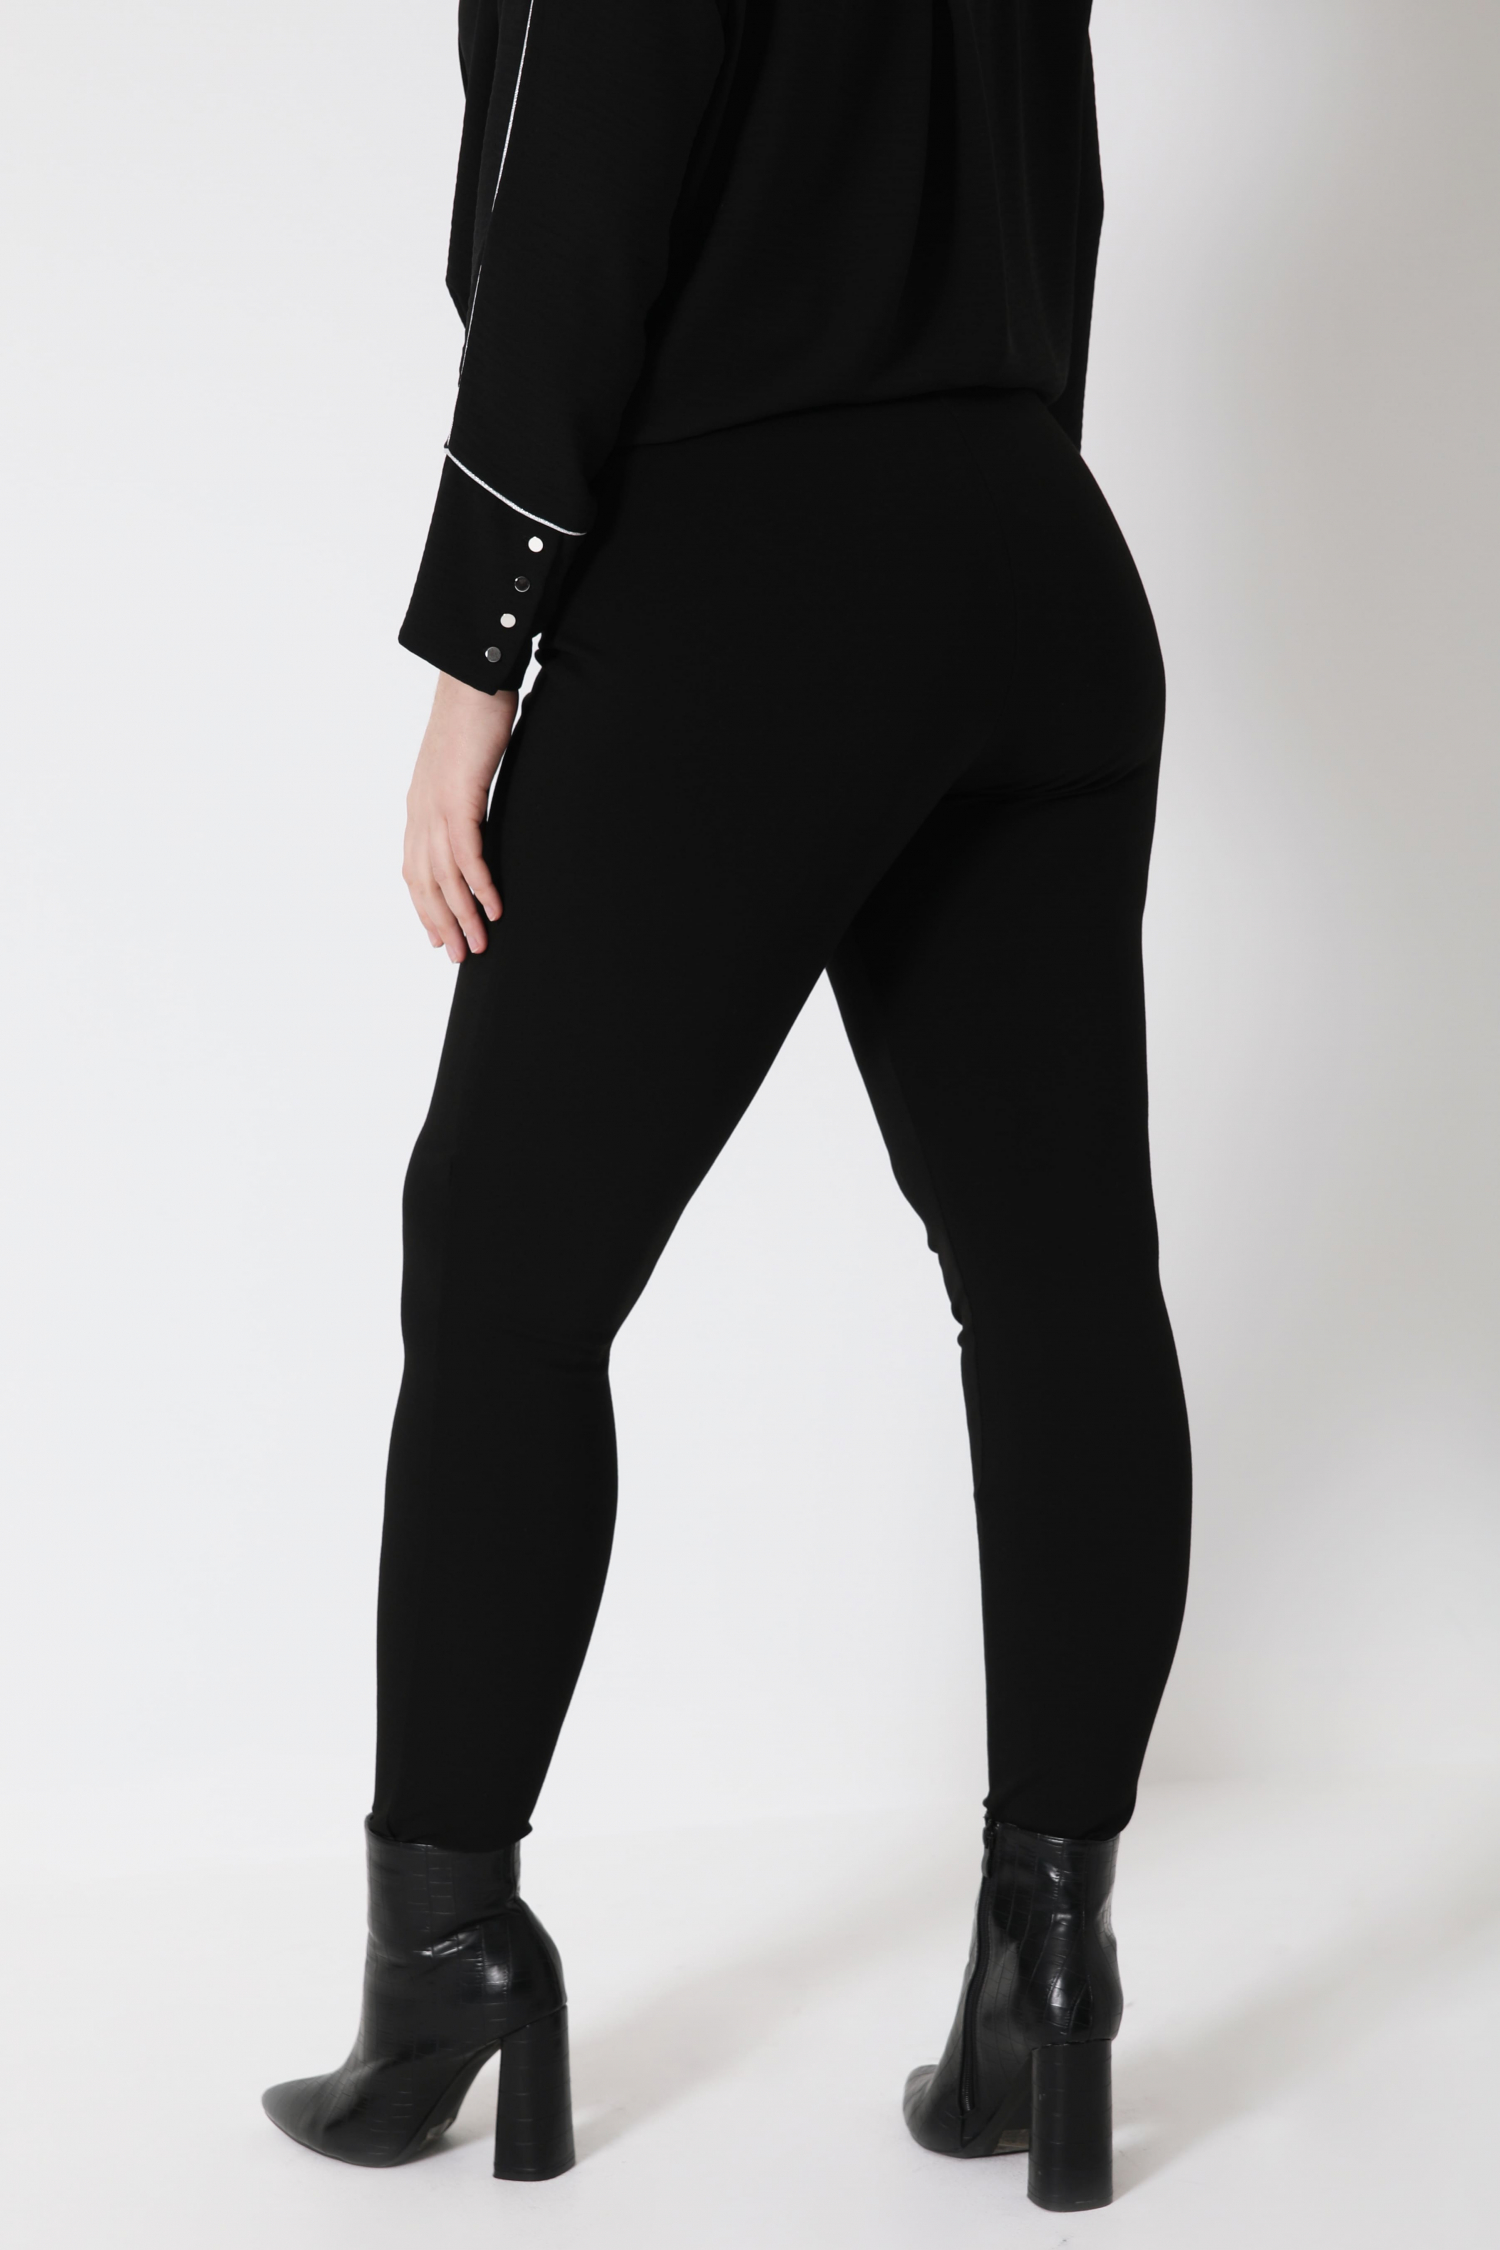 Trousers with integrated sheath